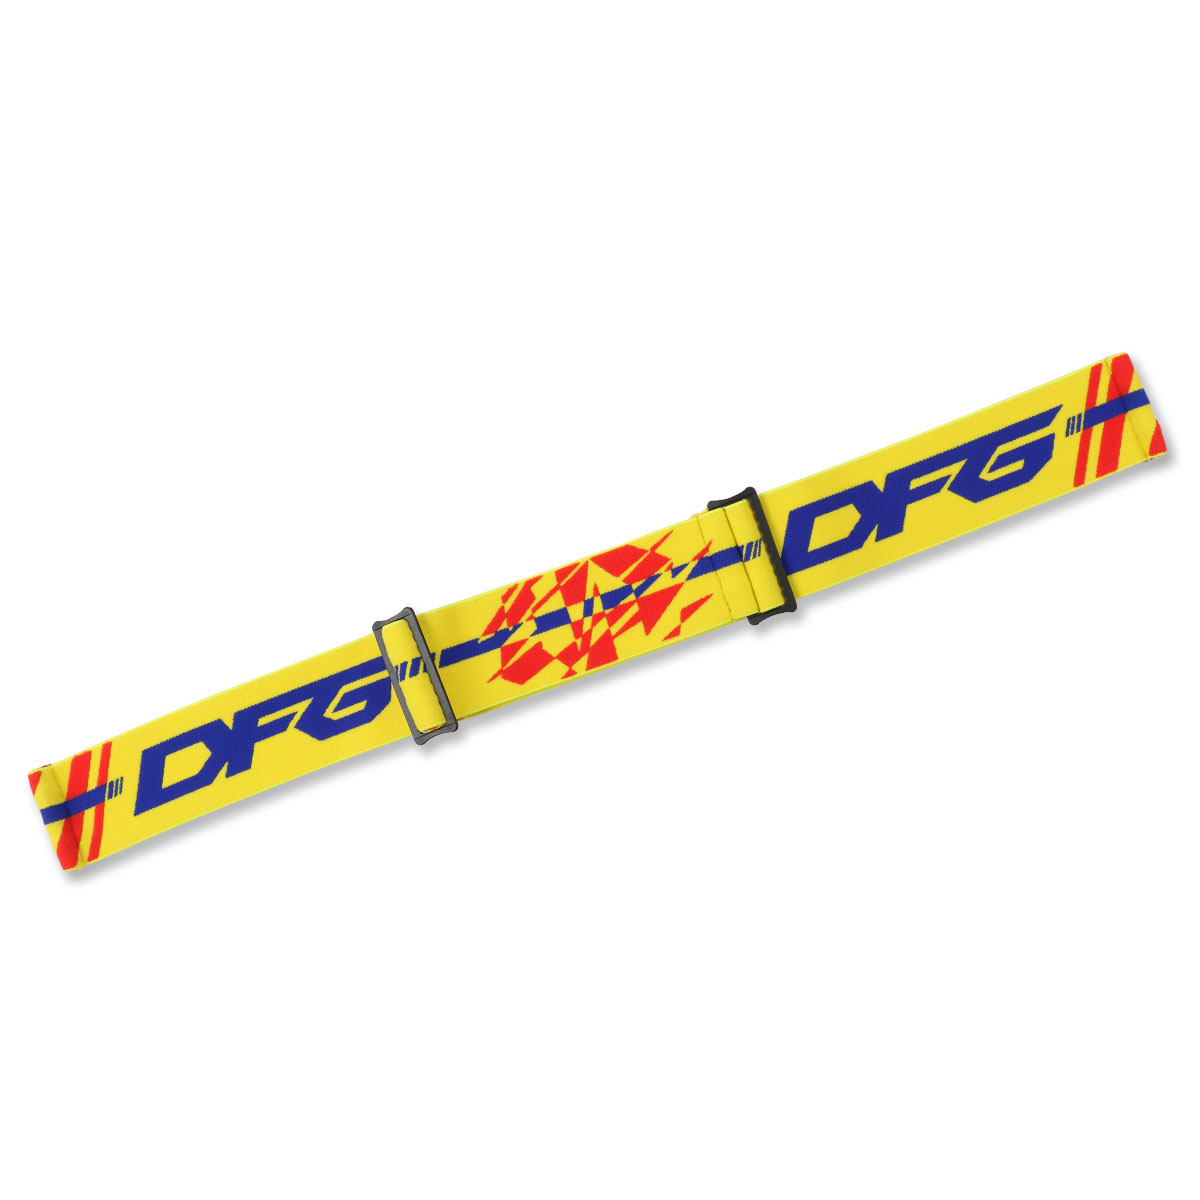 THROTTLE GOGGLE_THROTTLE GOGGLE v2.0 Replacement Strap_Blue / Yellow